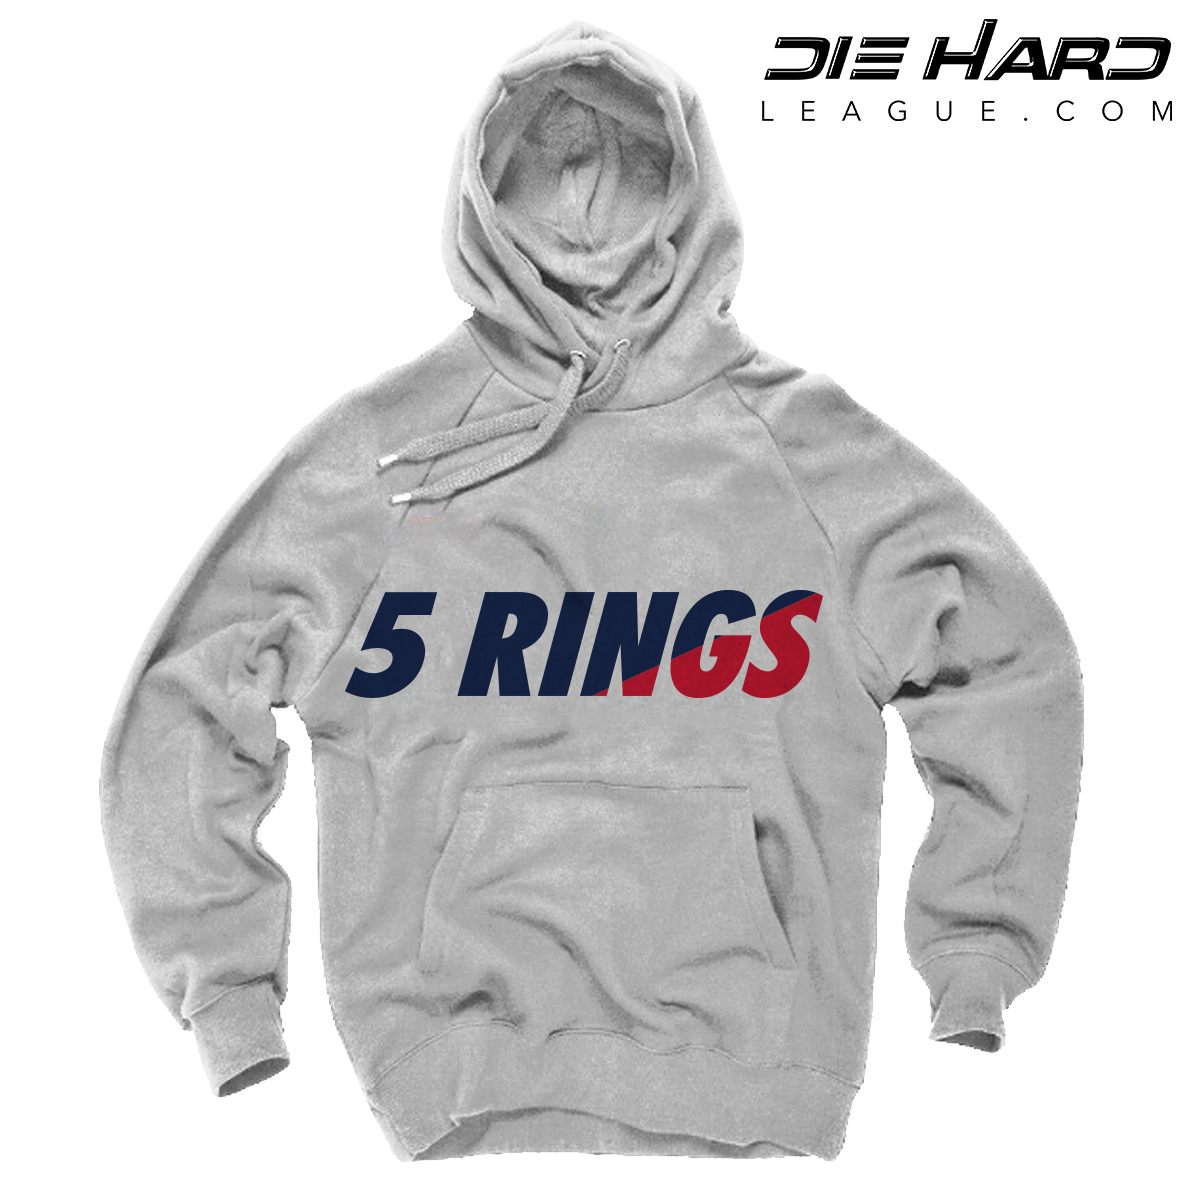 Patriots Hoodie - New England Patriots 5 Rings White Sweater d2ae553d4